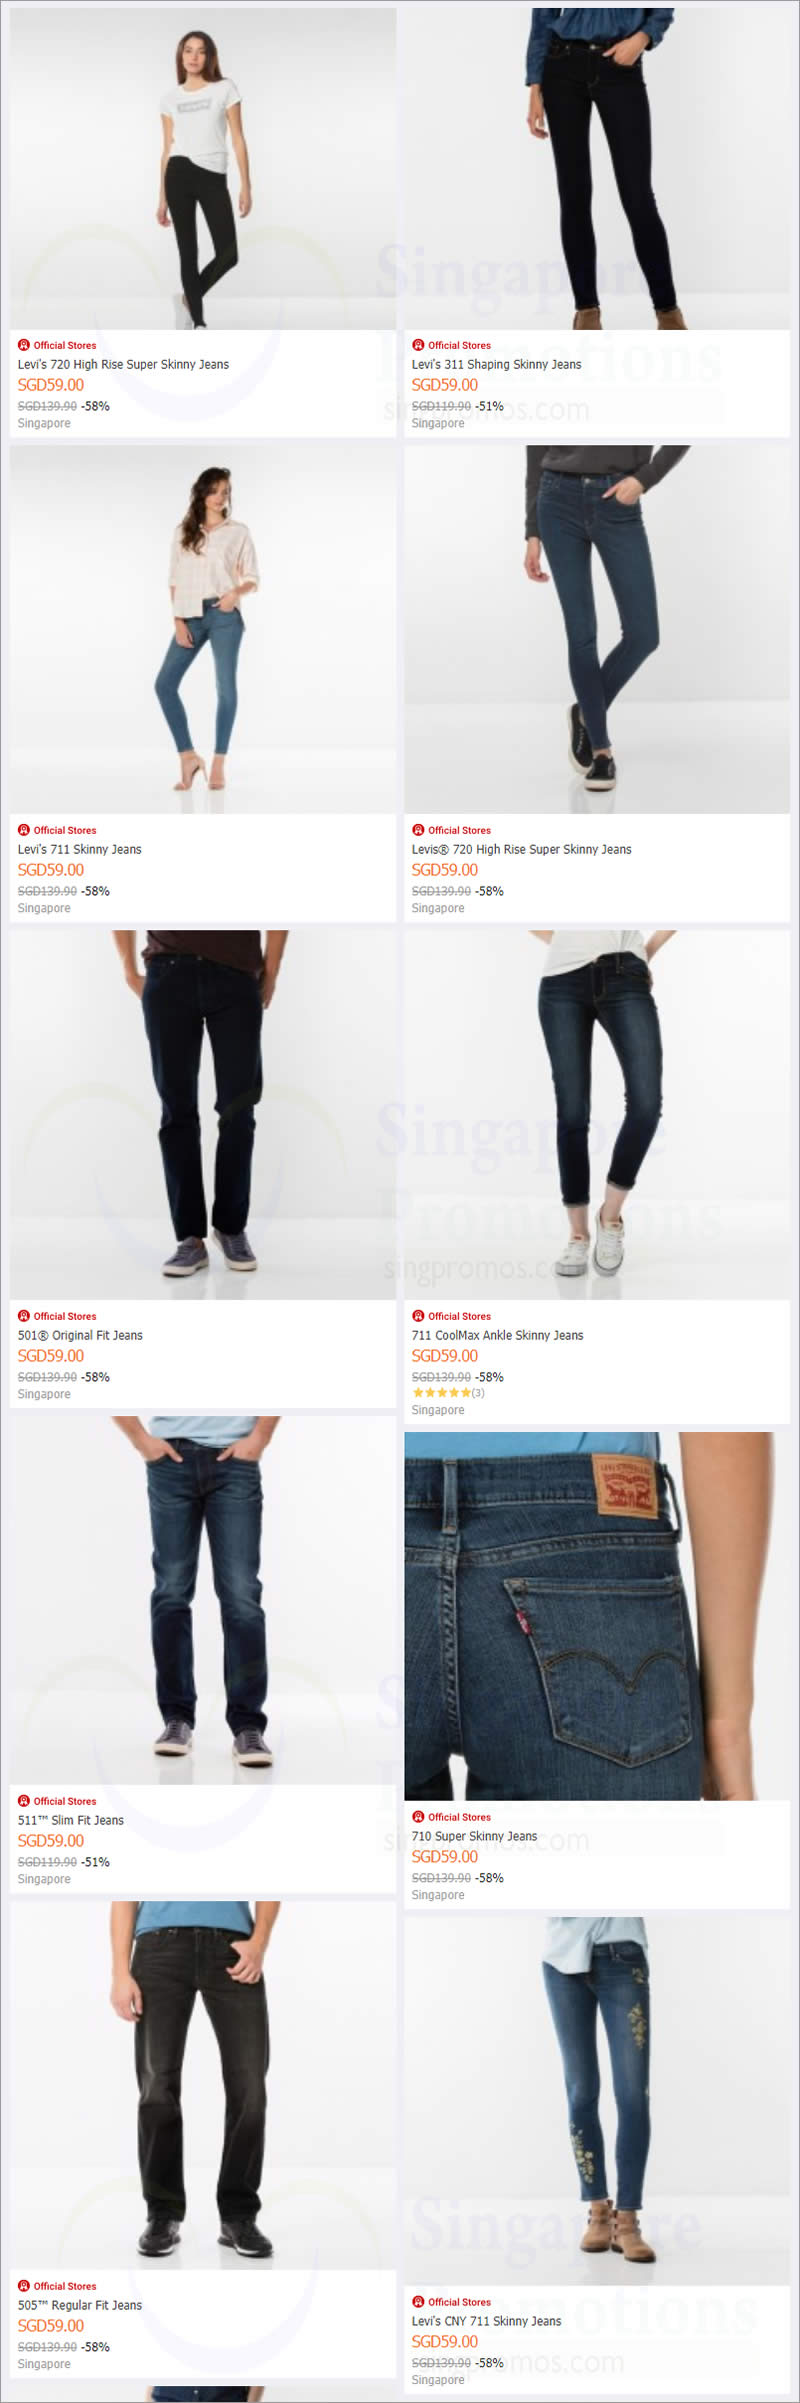 8c728c4b7a6 TODAY Only! Levi s official estore is offering  59 jeans (usual up ...